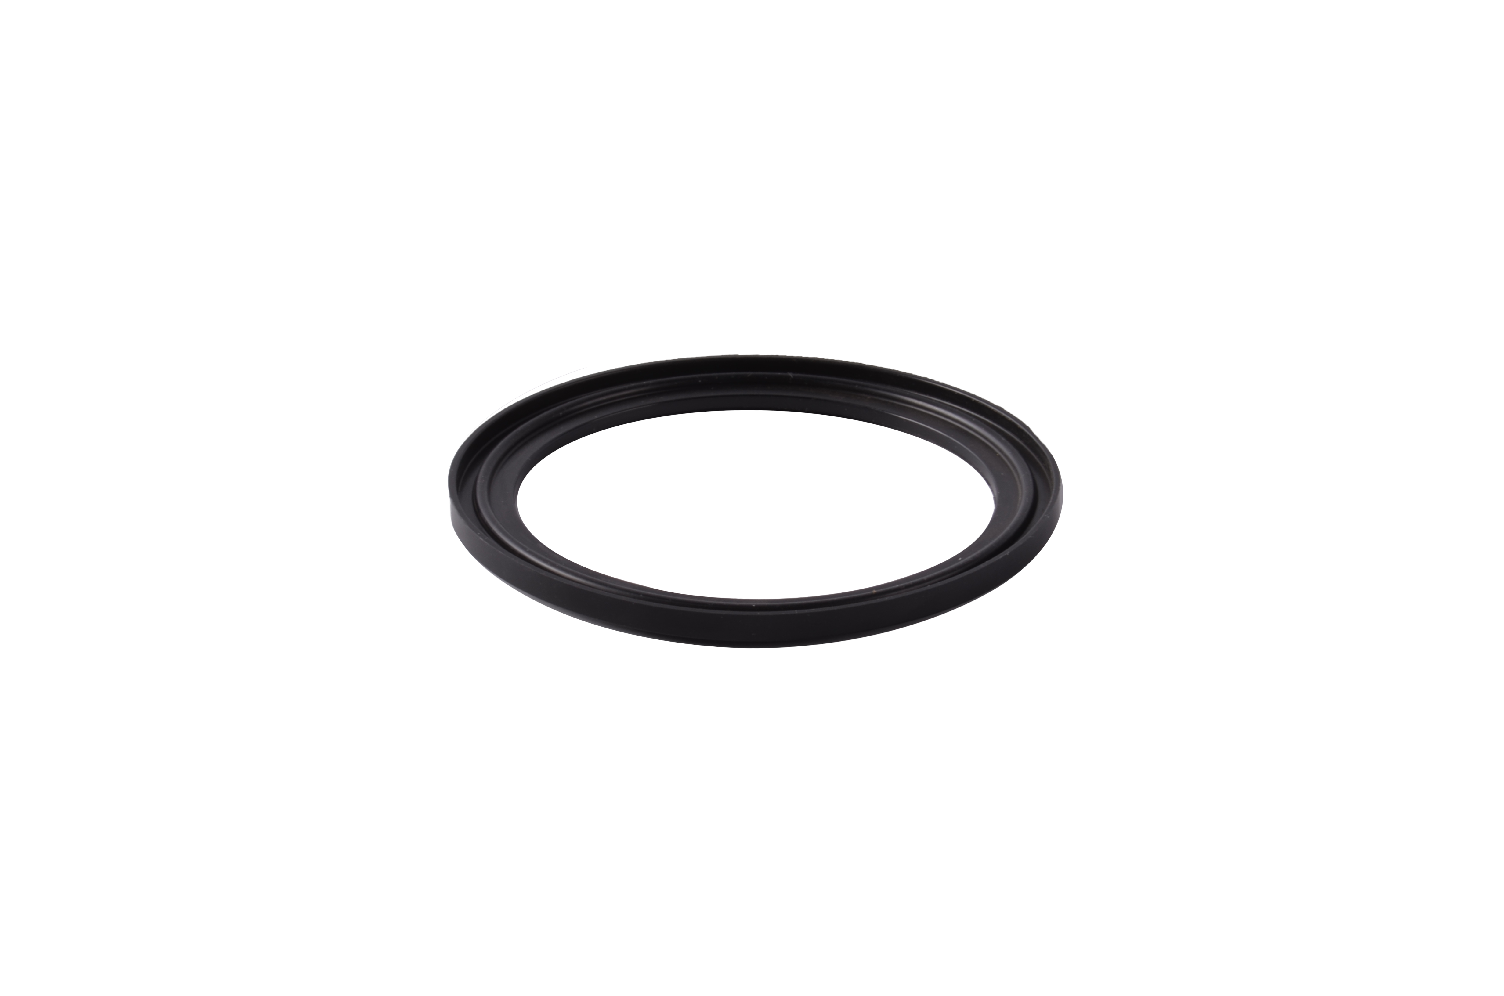 Triclamp gasket flexible accessories-1-1